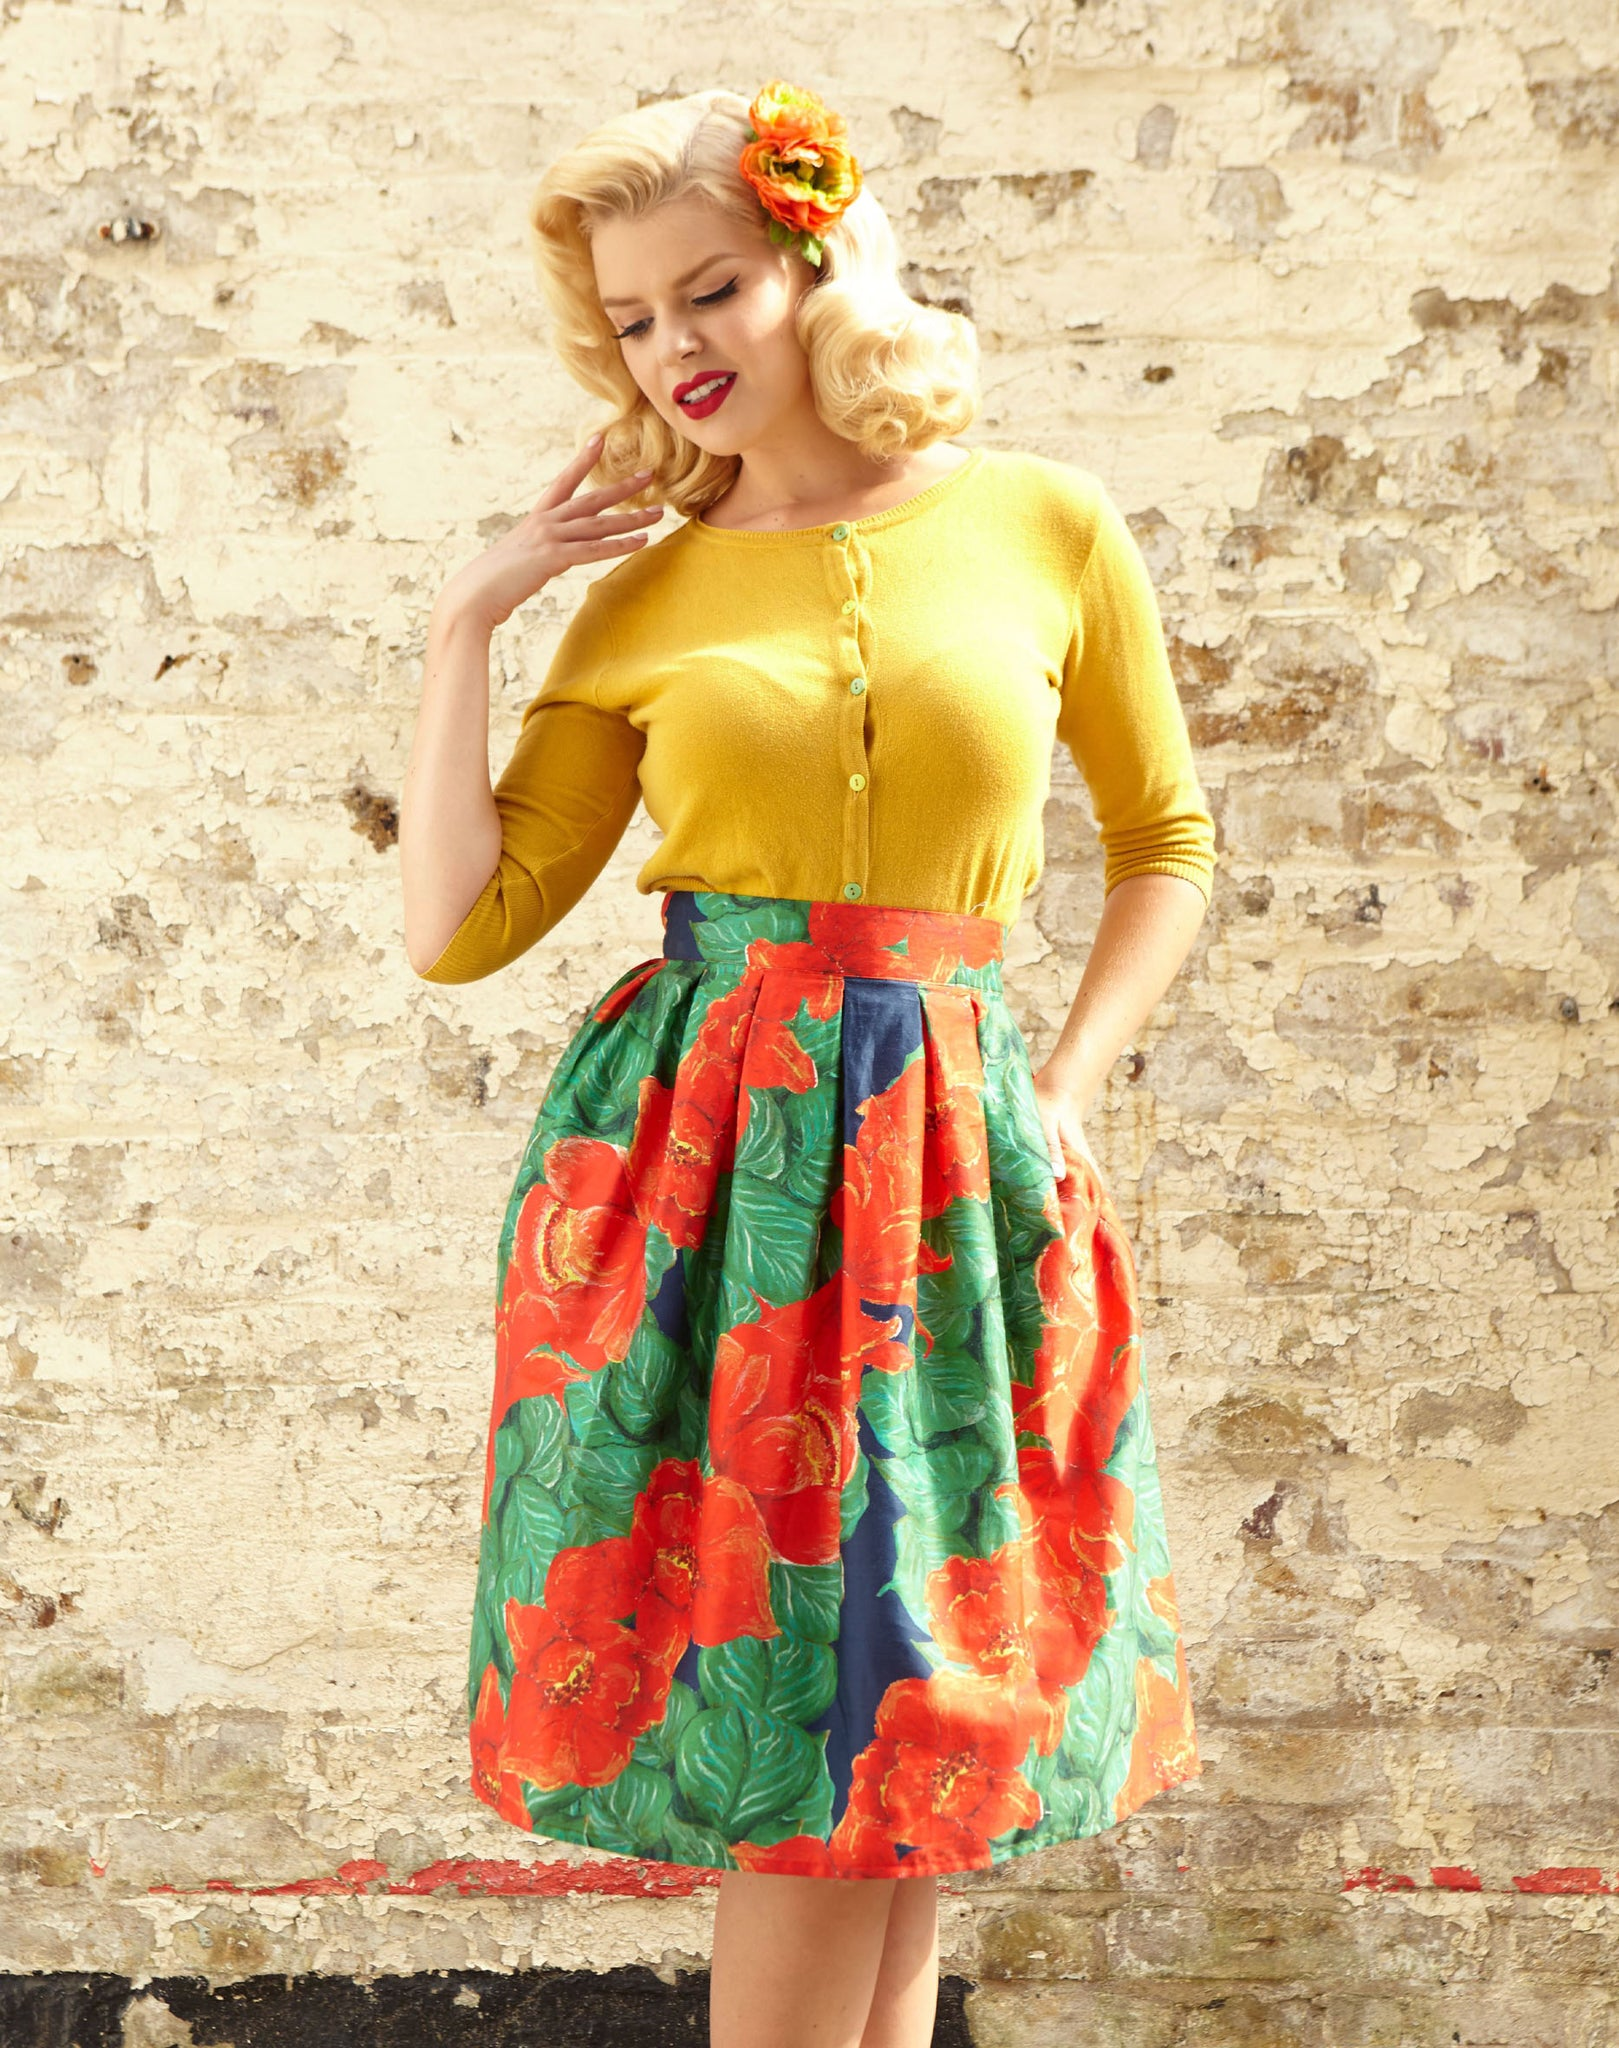 Ada - Red Camellia Print Tropical Elegant Vintage-style Skirt with Pockets